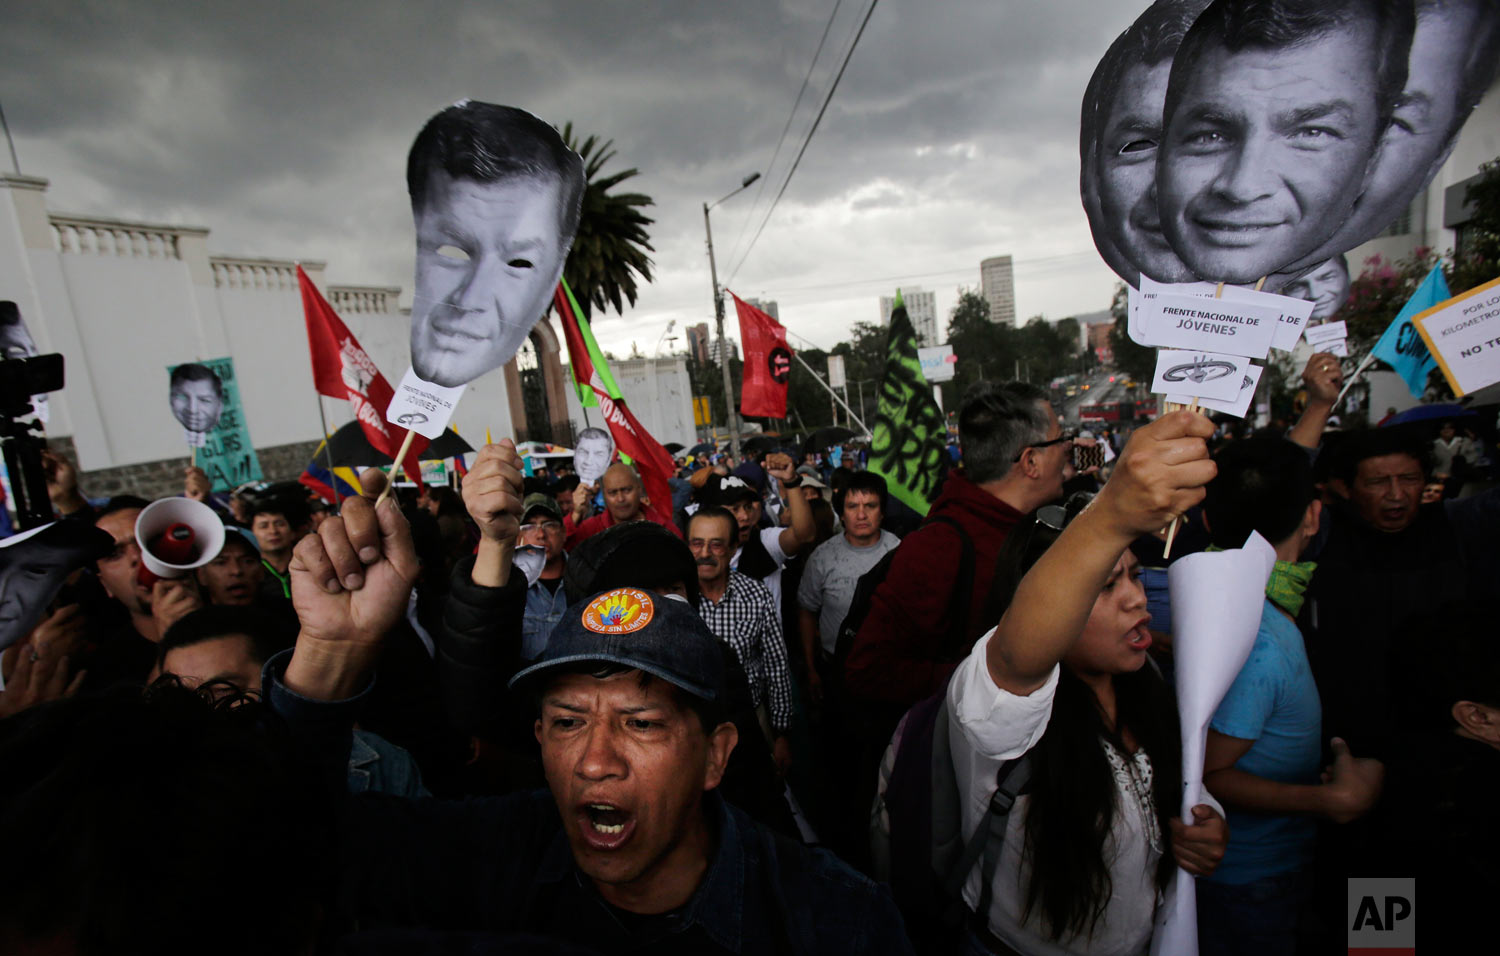 In this June 14, 2018 photo, supporters of Ecuador's former President Rafael Correa hold up images of his face to protest an attempt to prosecute him, outside the National Assembly in Quito, Ecuador. Correa has denied the allegation that he ordered the 2012 kidnapping of political rival Fernando Balda, saying it is part of a campaign by the current government to discredit him and destroy his leftist movement. (AP Photo/Dolores Ochoa)